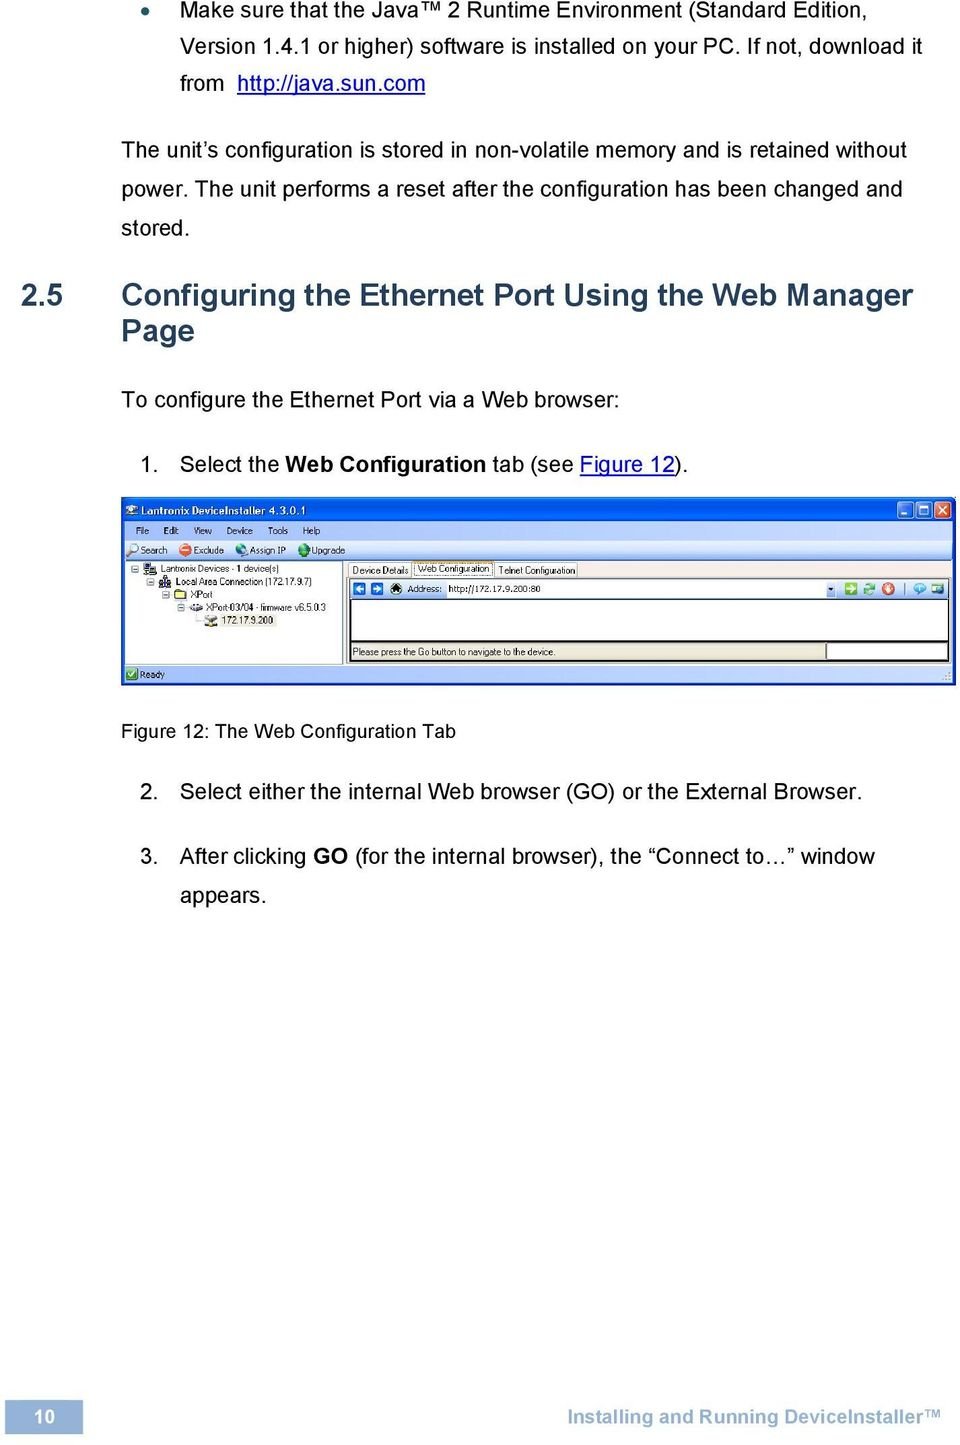 5 Configuring the Ethernet Port Using the Web Manager Page To configure the Ethernet Port via a Web browser: 1. Select the Web Configuration tab (see Figure 12).